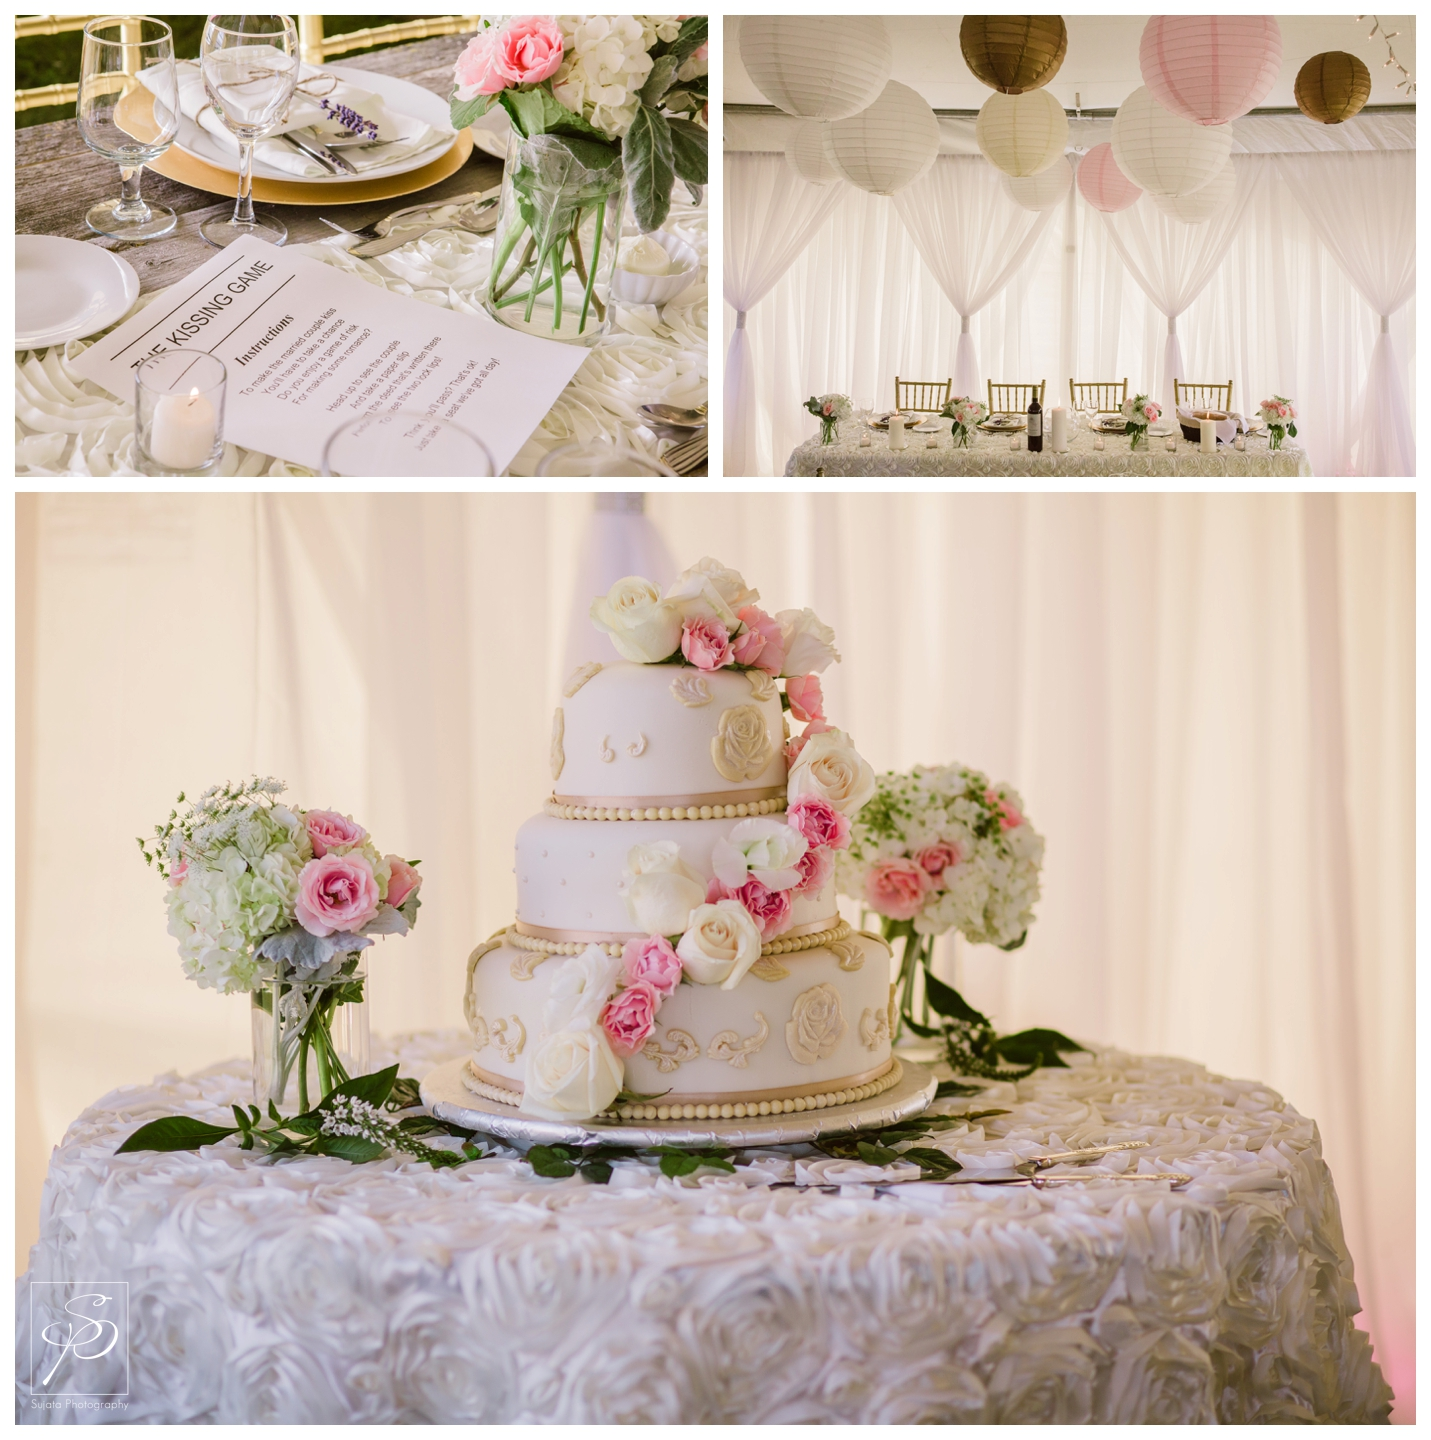 Pink and white wedding cake at tent reception